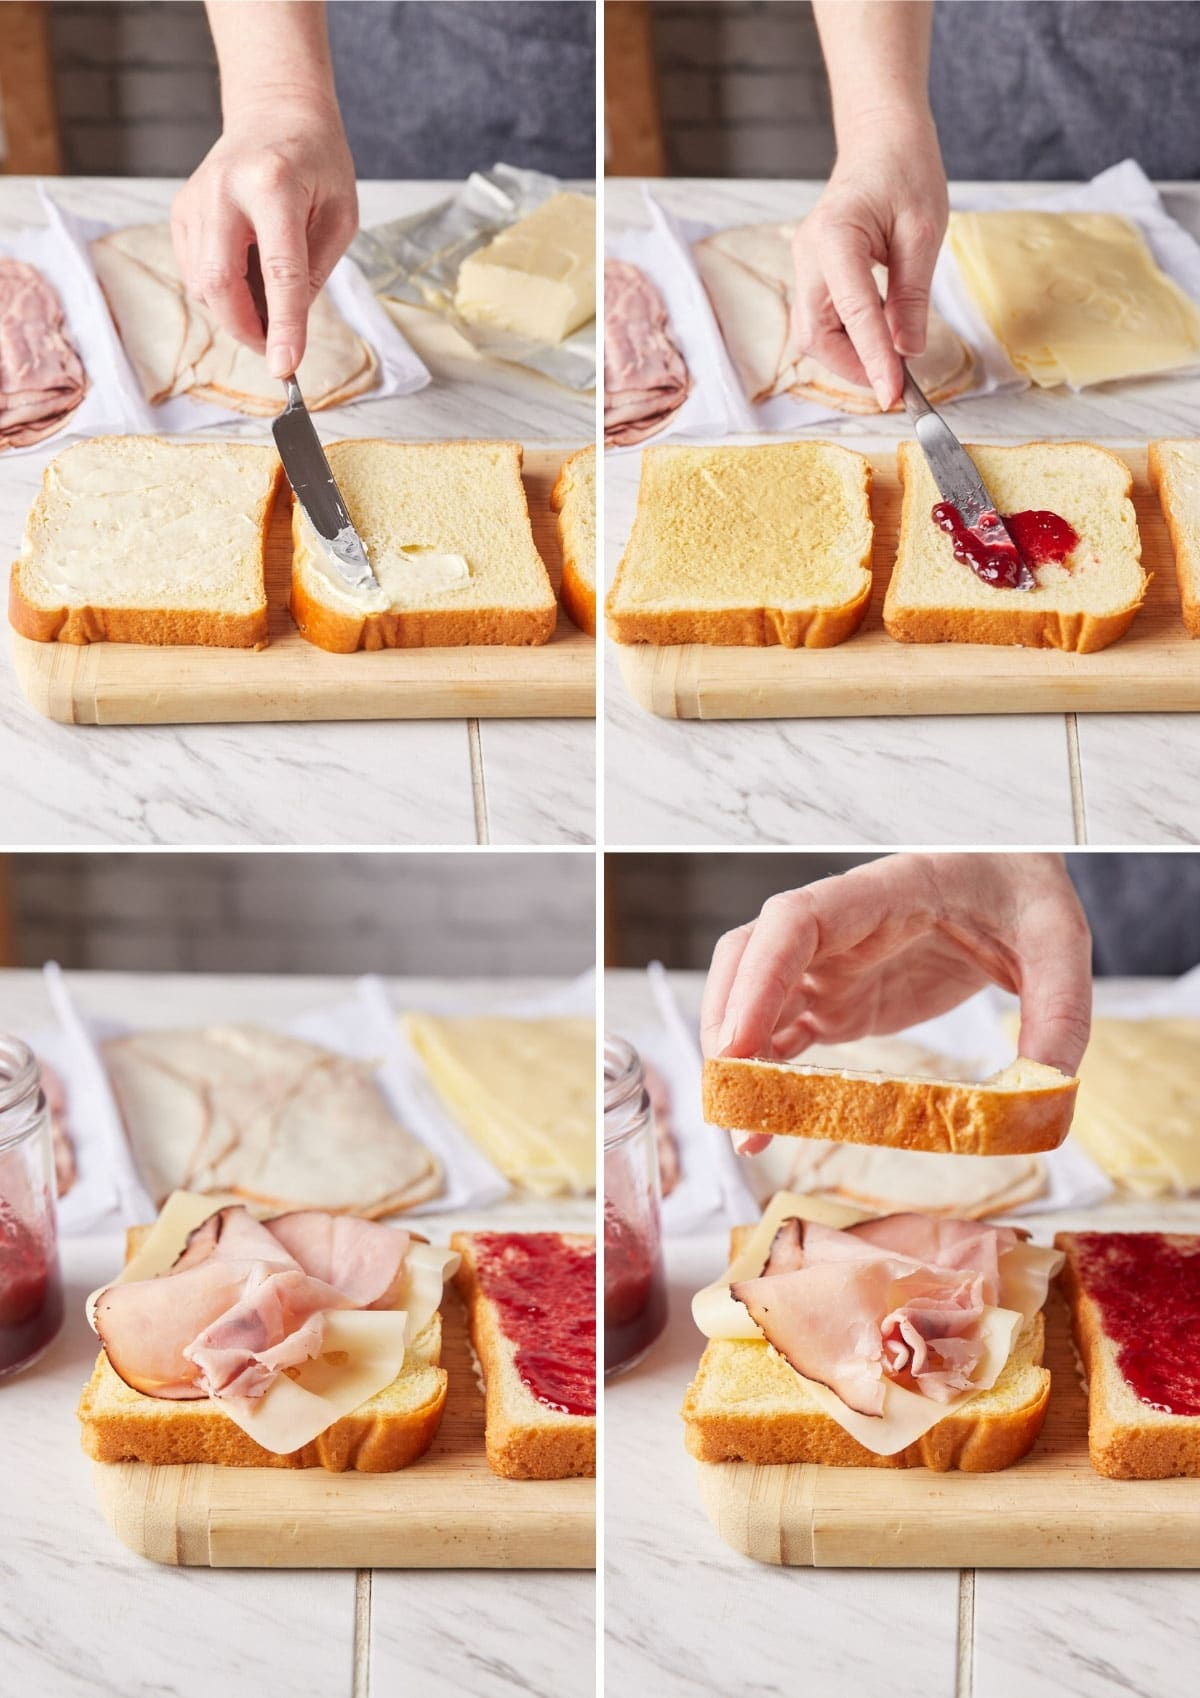 four photos showing the process of assembling a monte cristo sandwich: spreading butter on bread, spreading jelly on bread, layering ham and cheese, and placing the middle piece of bread on the triple decker